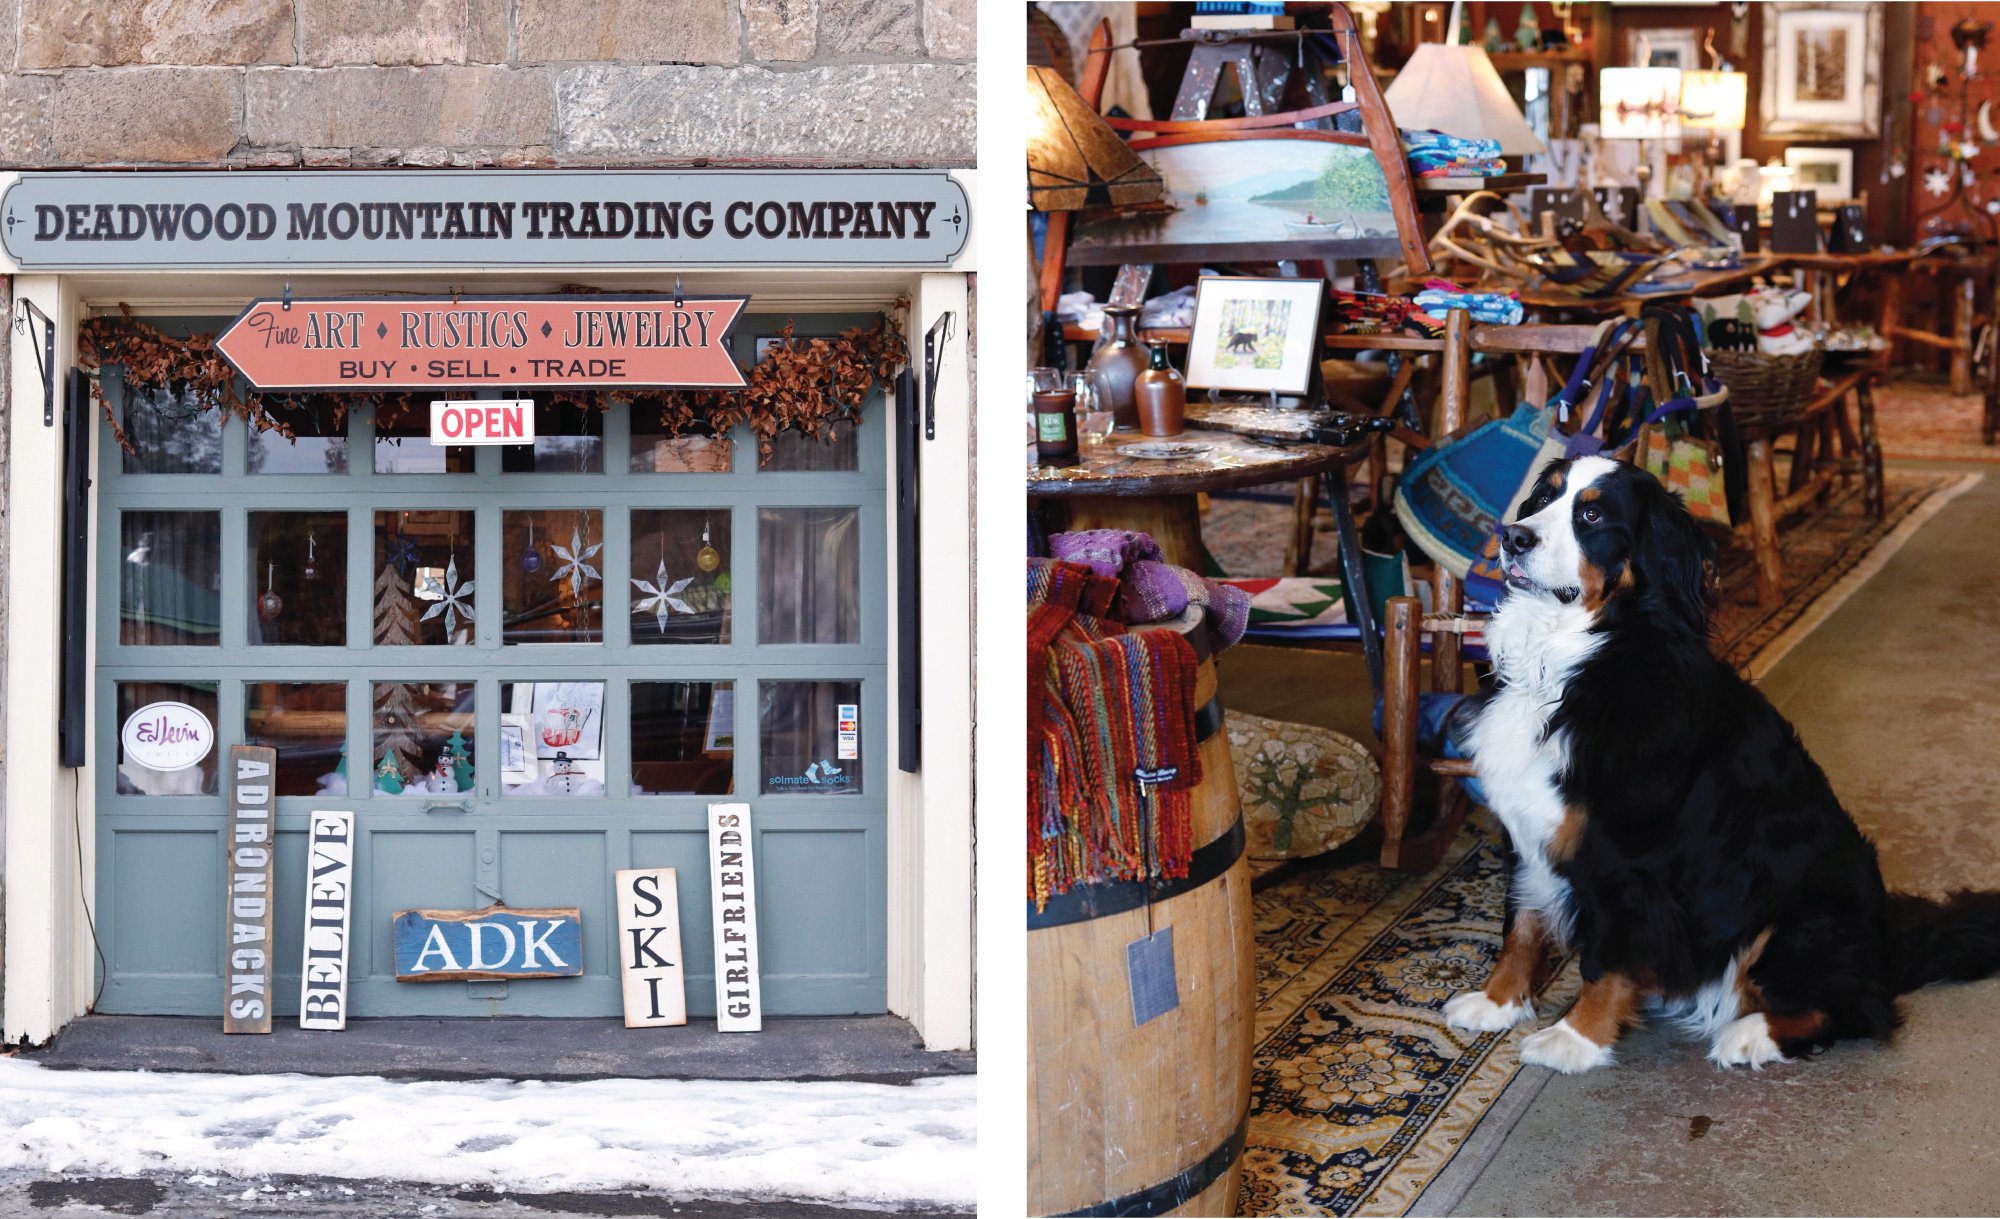 Deadwood Mountain Trading Company Warrensburg NY